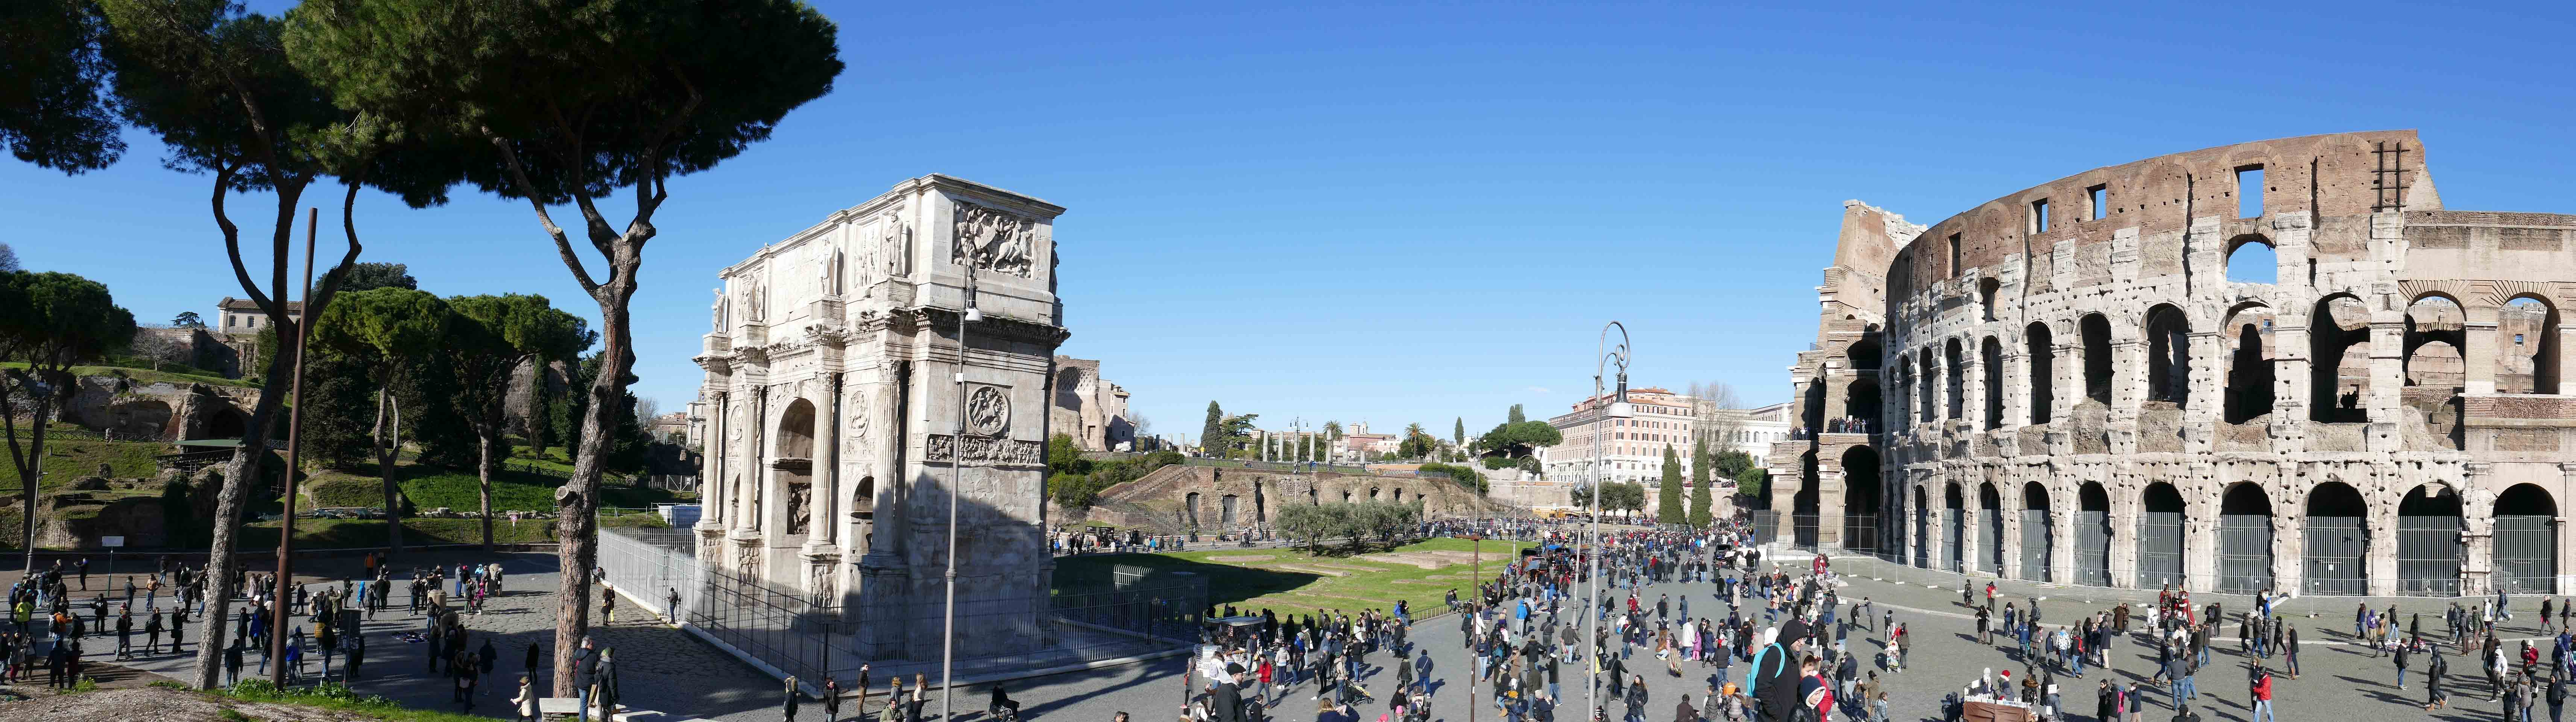 Rome-Colosseo-Home.jpg – Rome Information